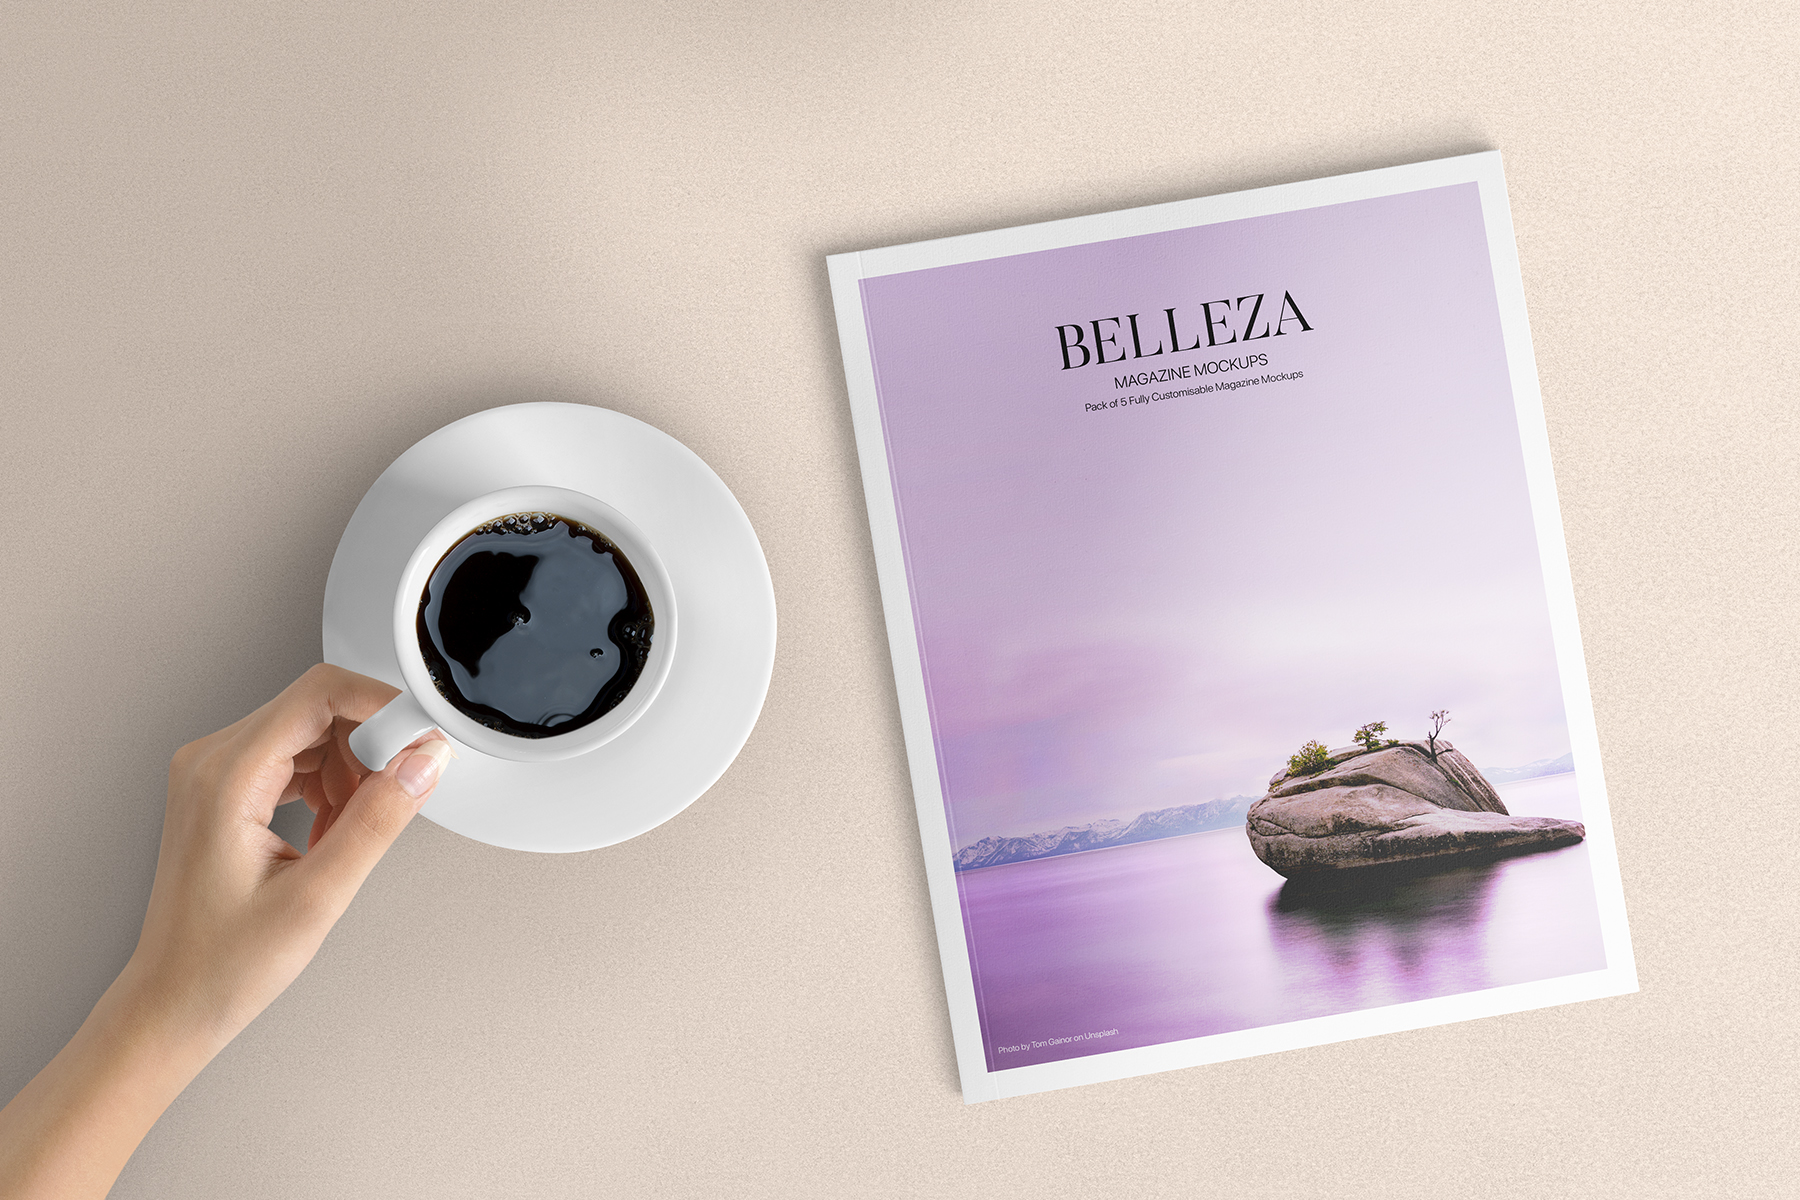 Belleza - A4 Magazine Mockups Pack